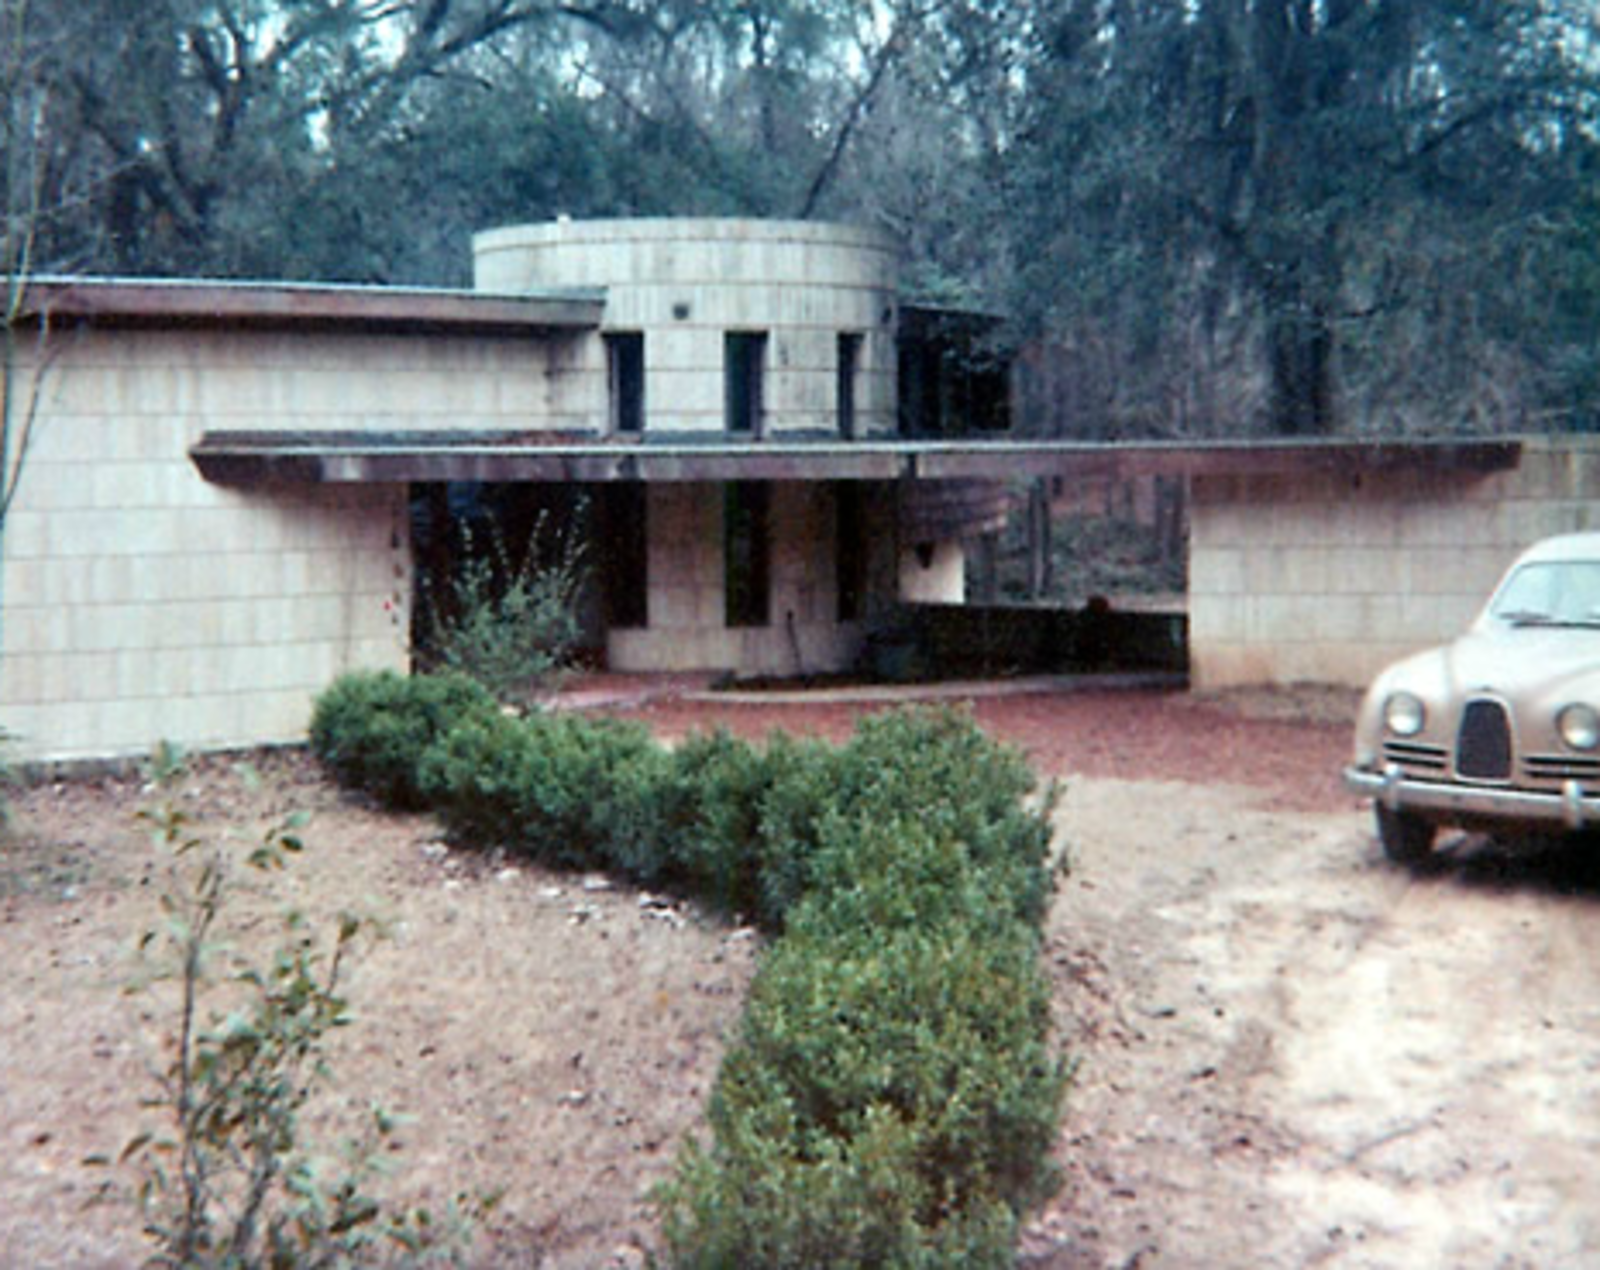 The Spring House was placed on the National Register of Historic Places on February 14, 1979. Pictured here is the home as viewed from the street.  Frank Lloyd Wright's Endangered Spring House  by Allie Weiss